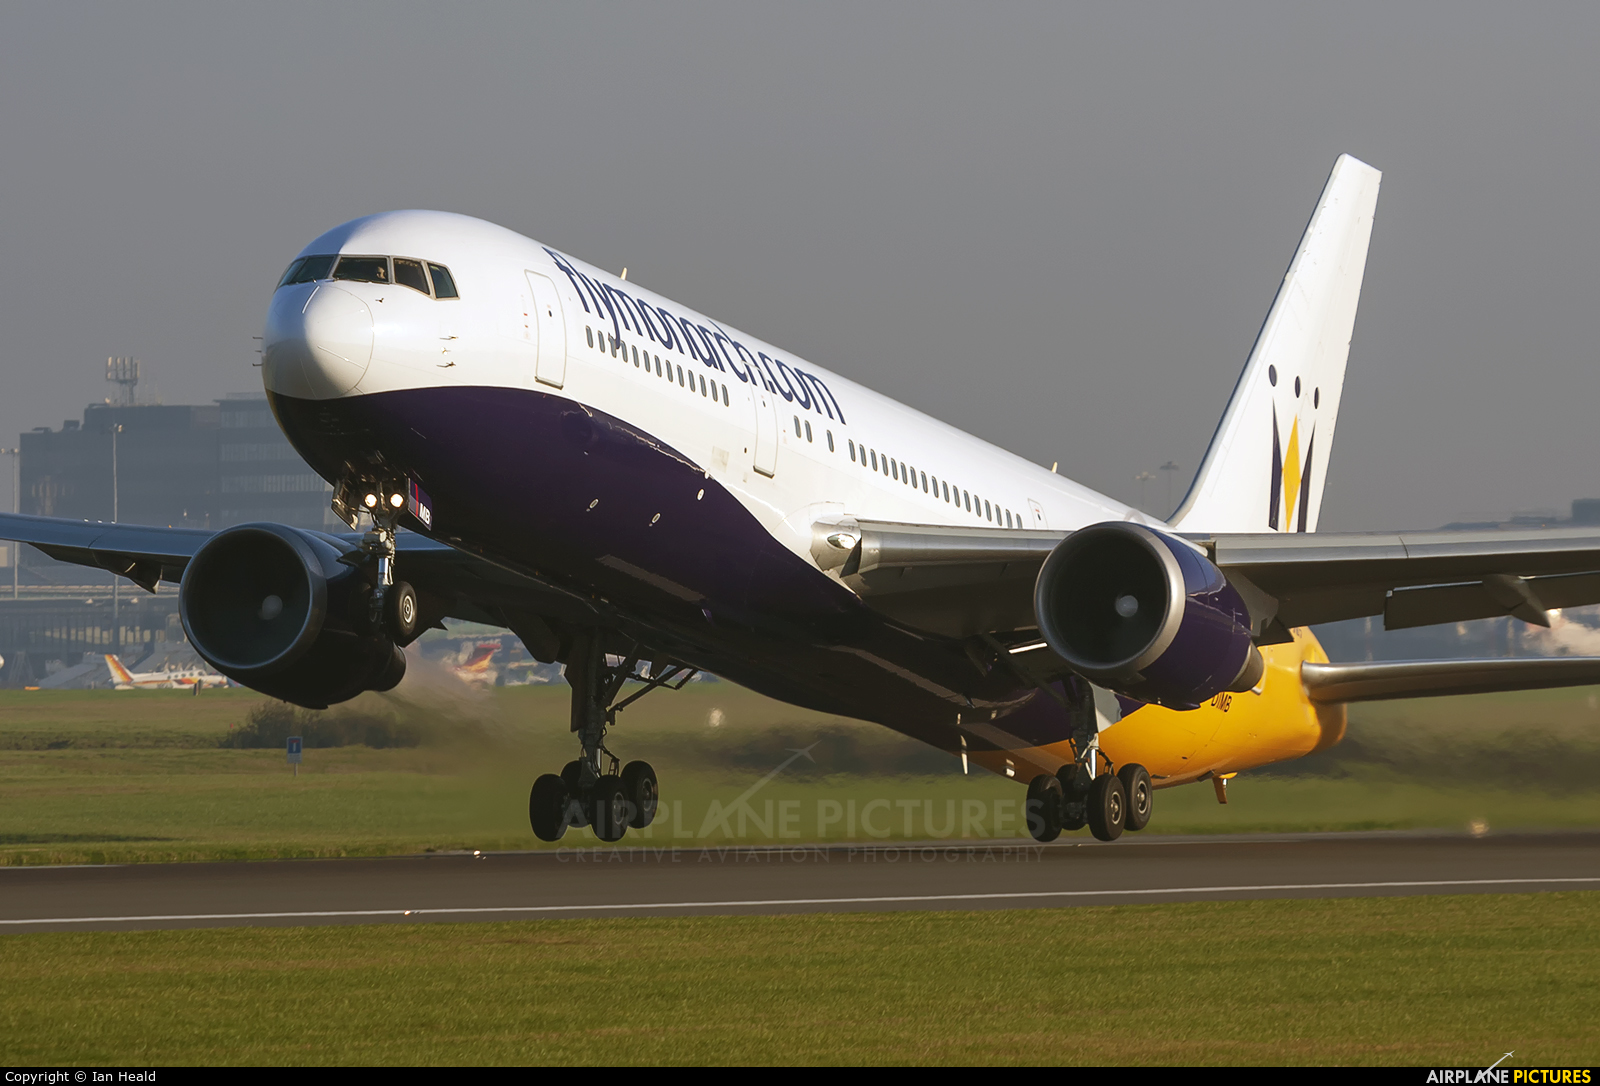 Monarch Airlines G-DIMB aircraft at Manchester